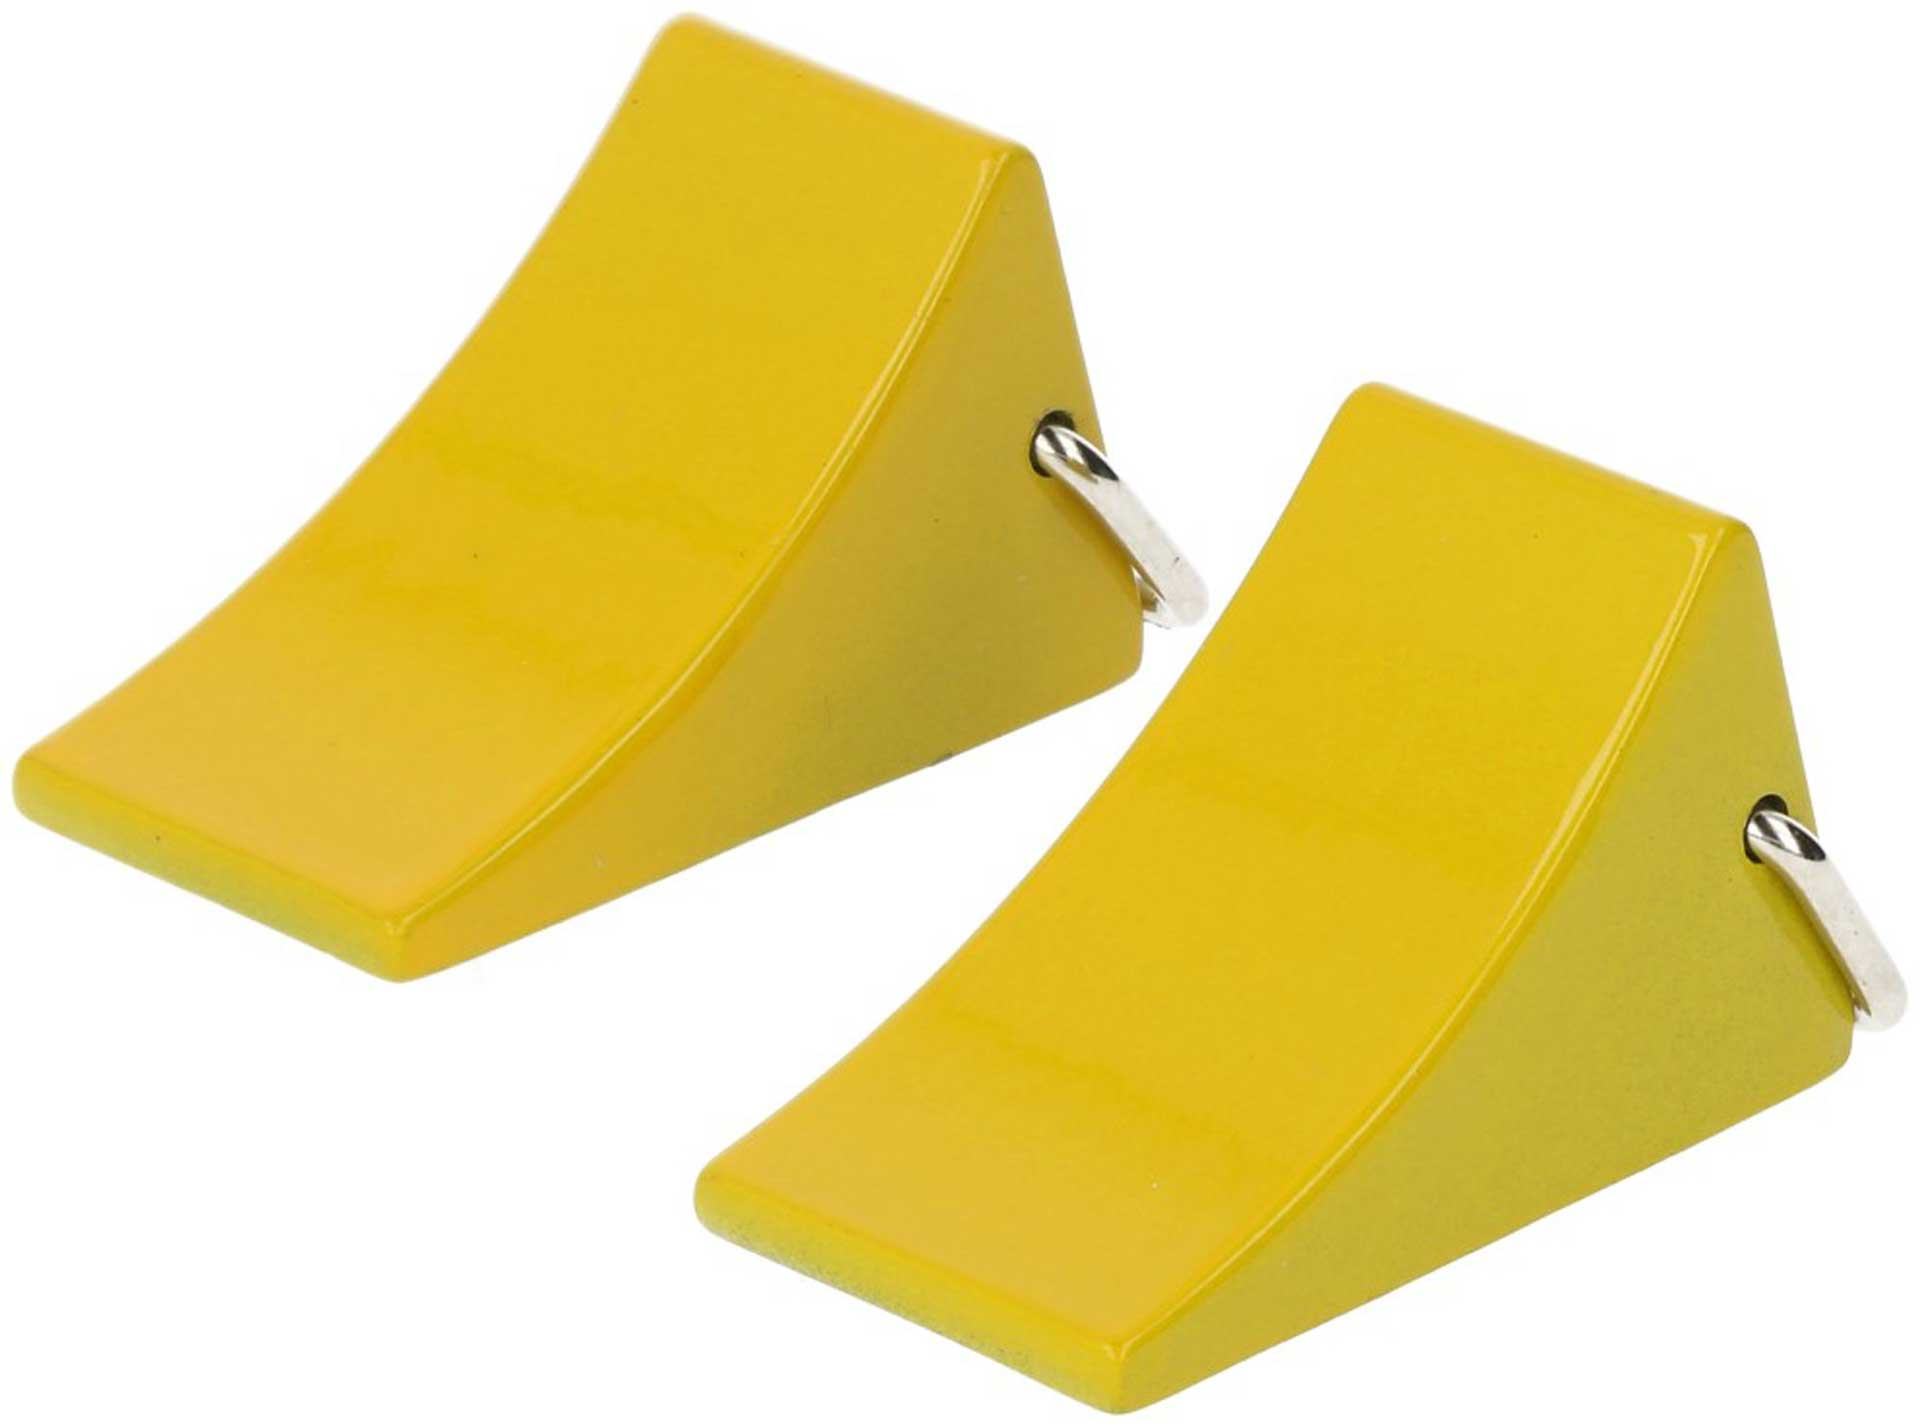 ROBITRONIC Wheel chocks Fuse yellow (2 pcs.) Drag Shoes Cast Iron